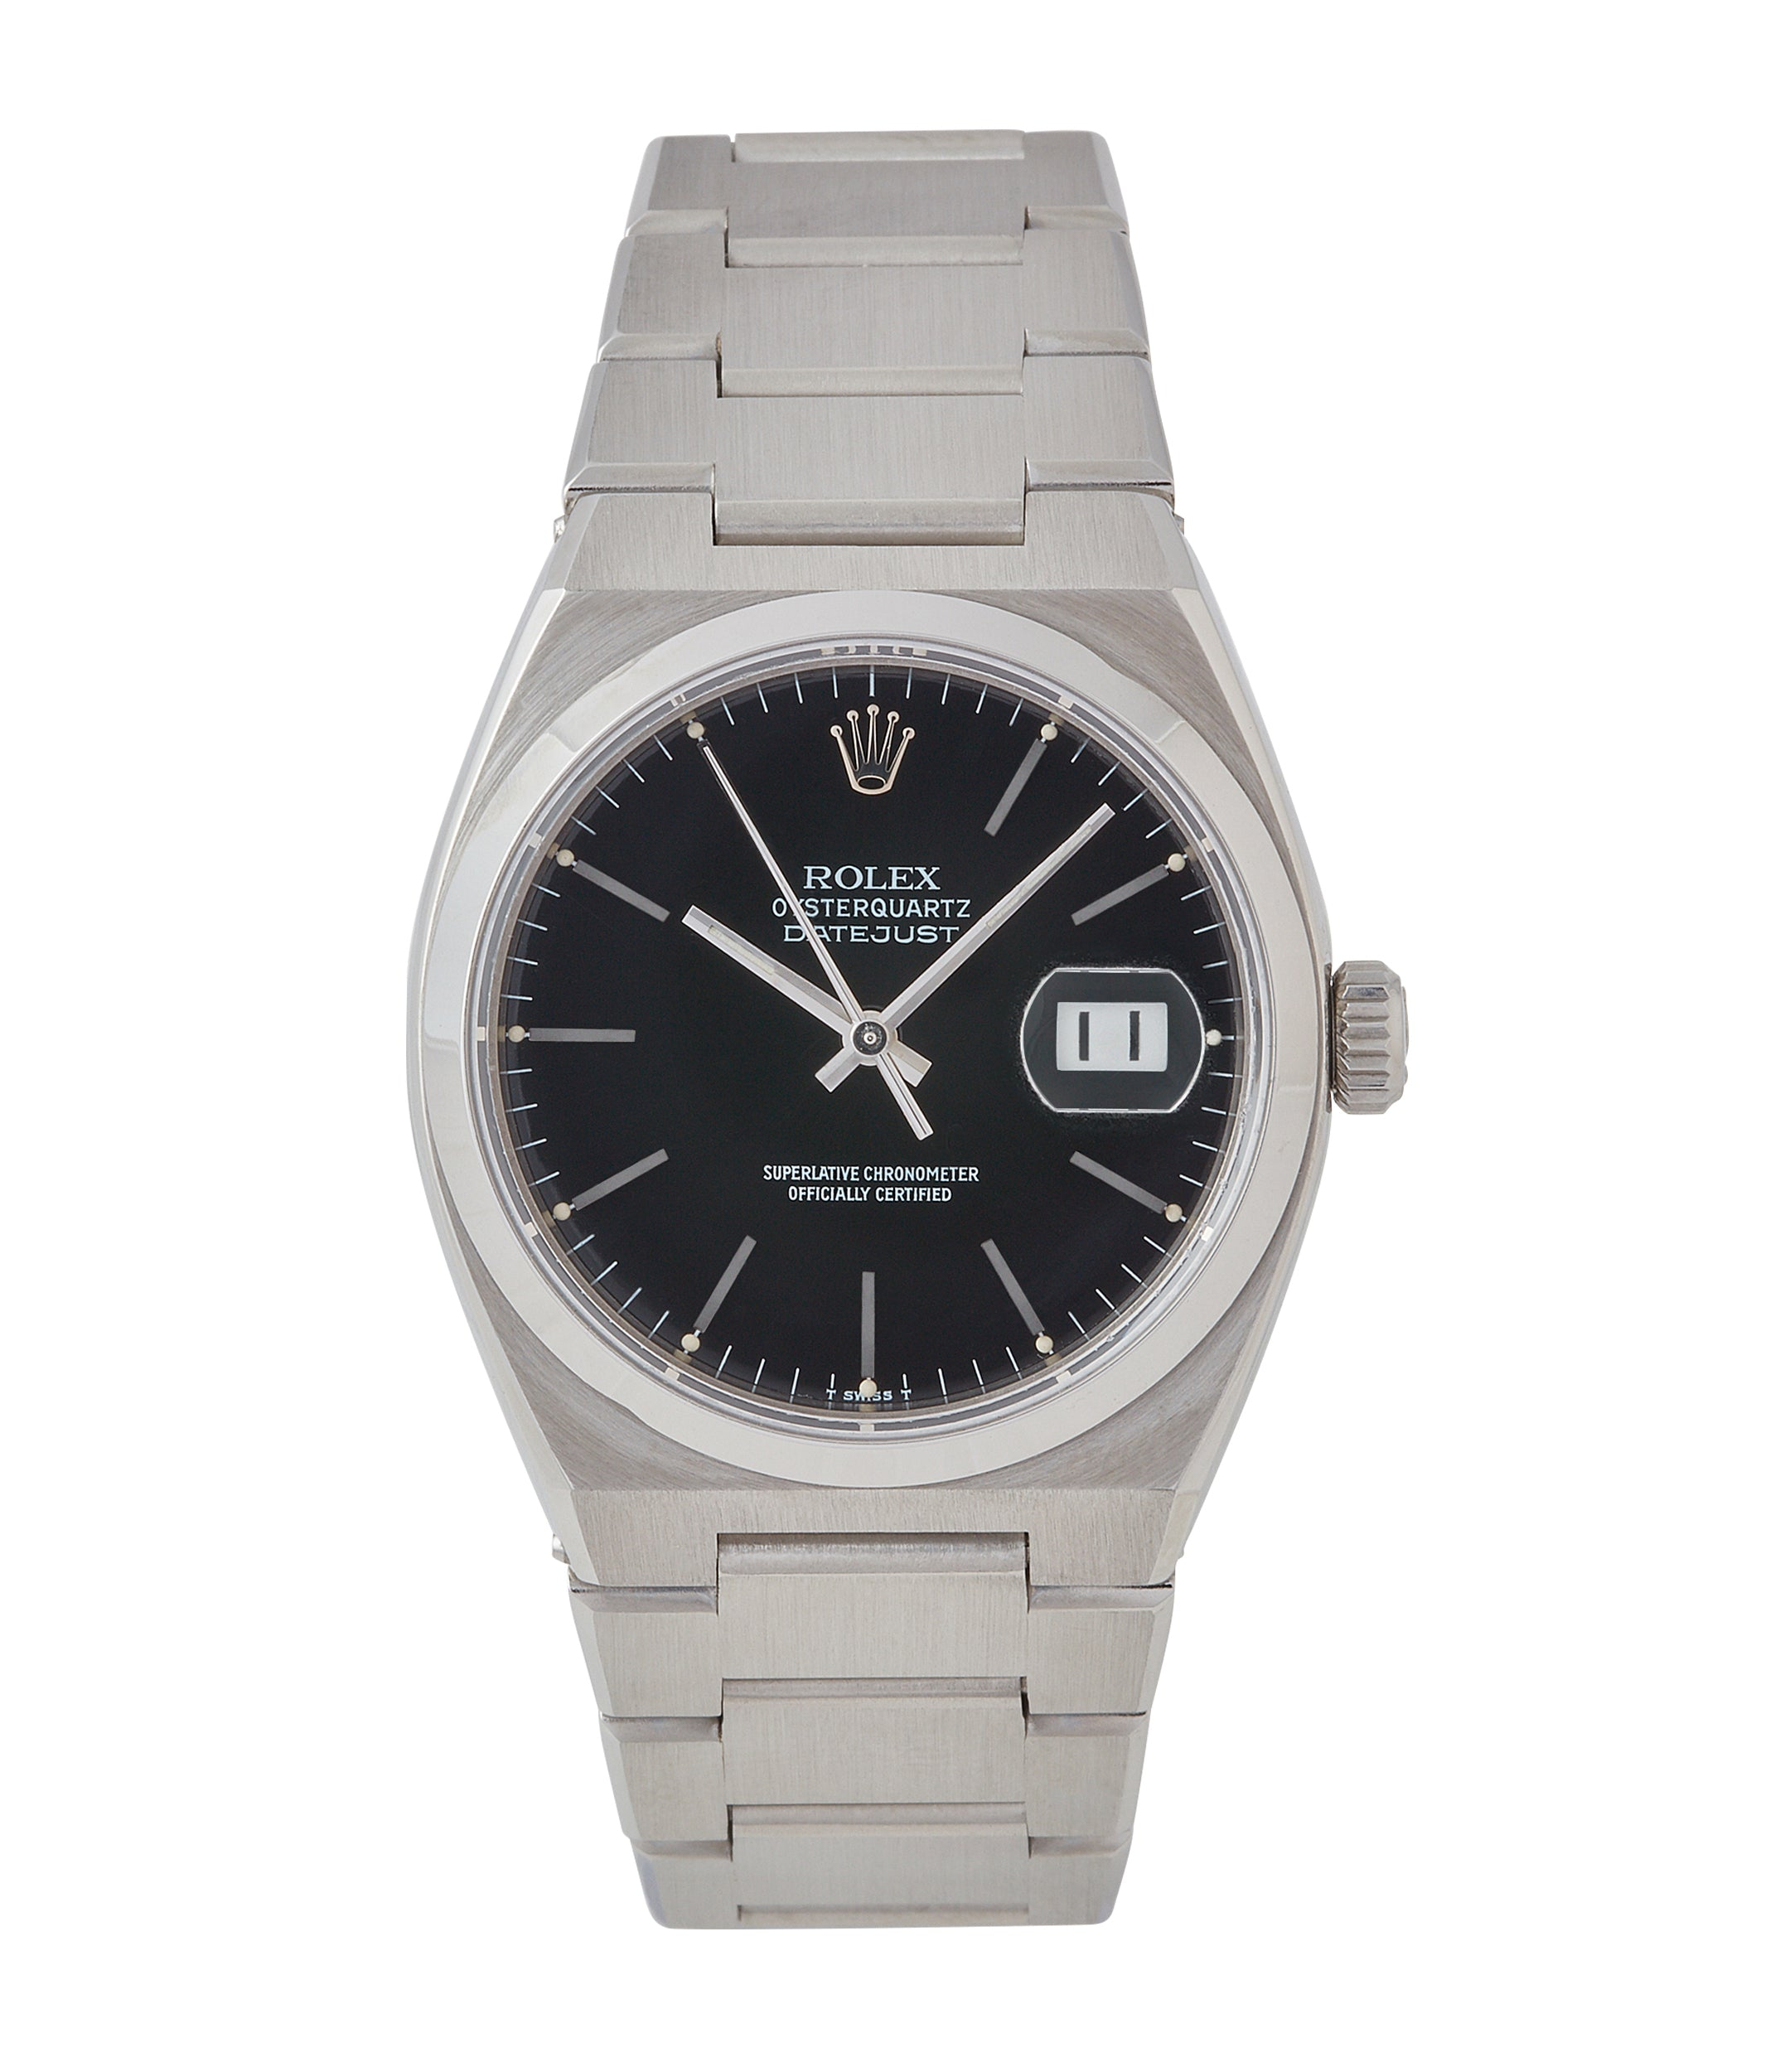 buy vintage Rolex Oysterquartz Datejust ref. 17000 steel sport watch full set for sale online at A Collected Man London specialist of rare watches